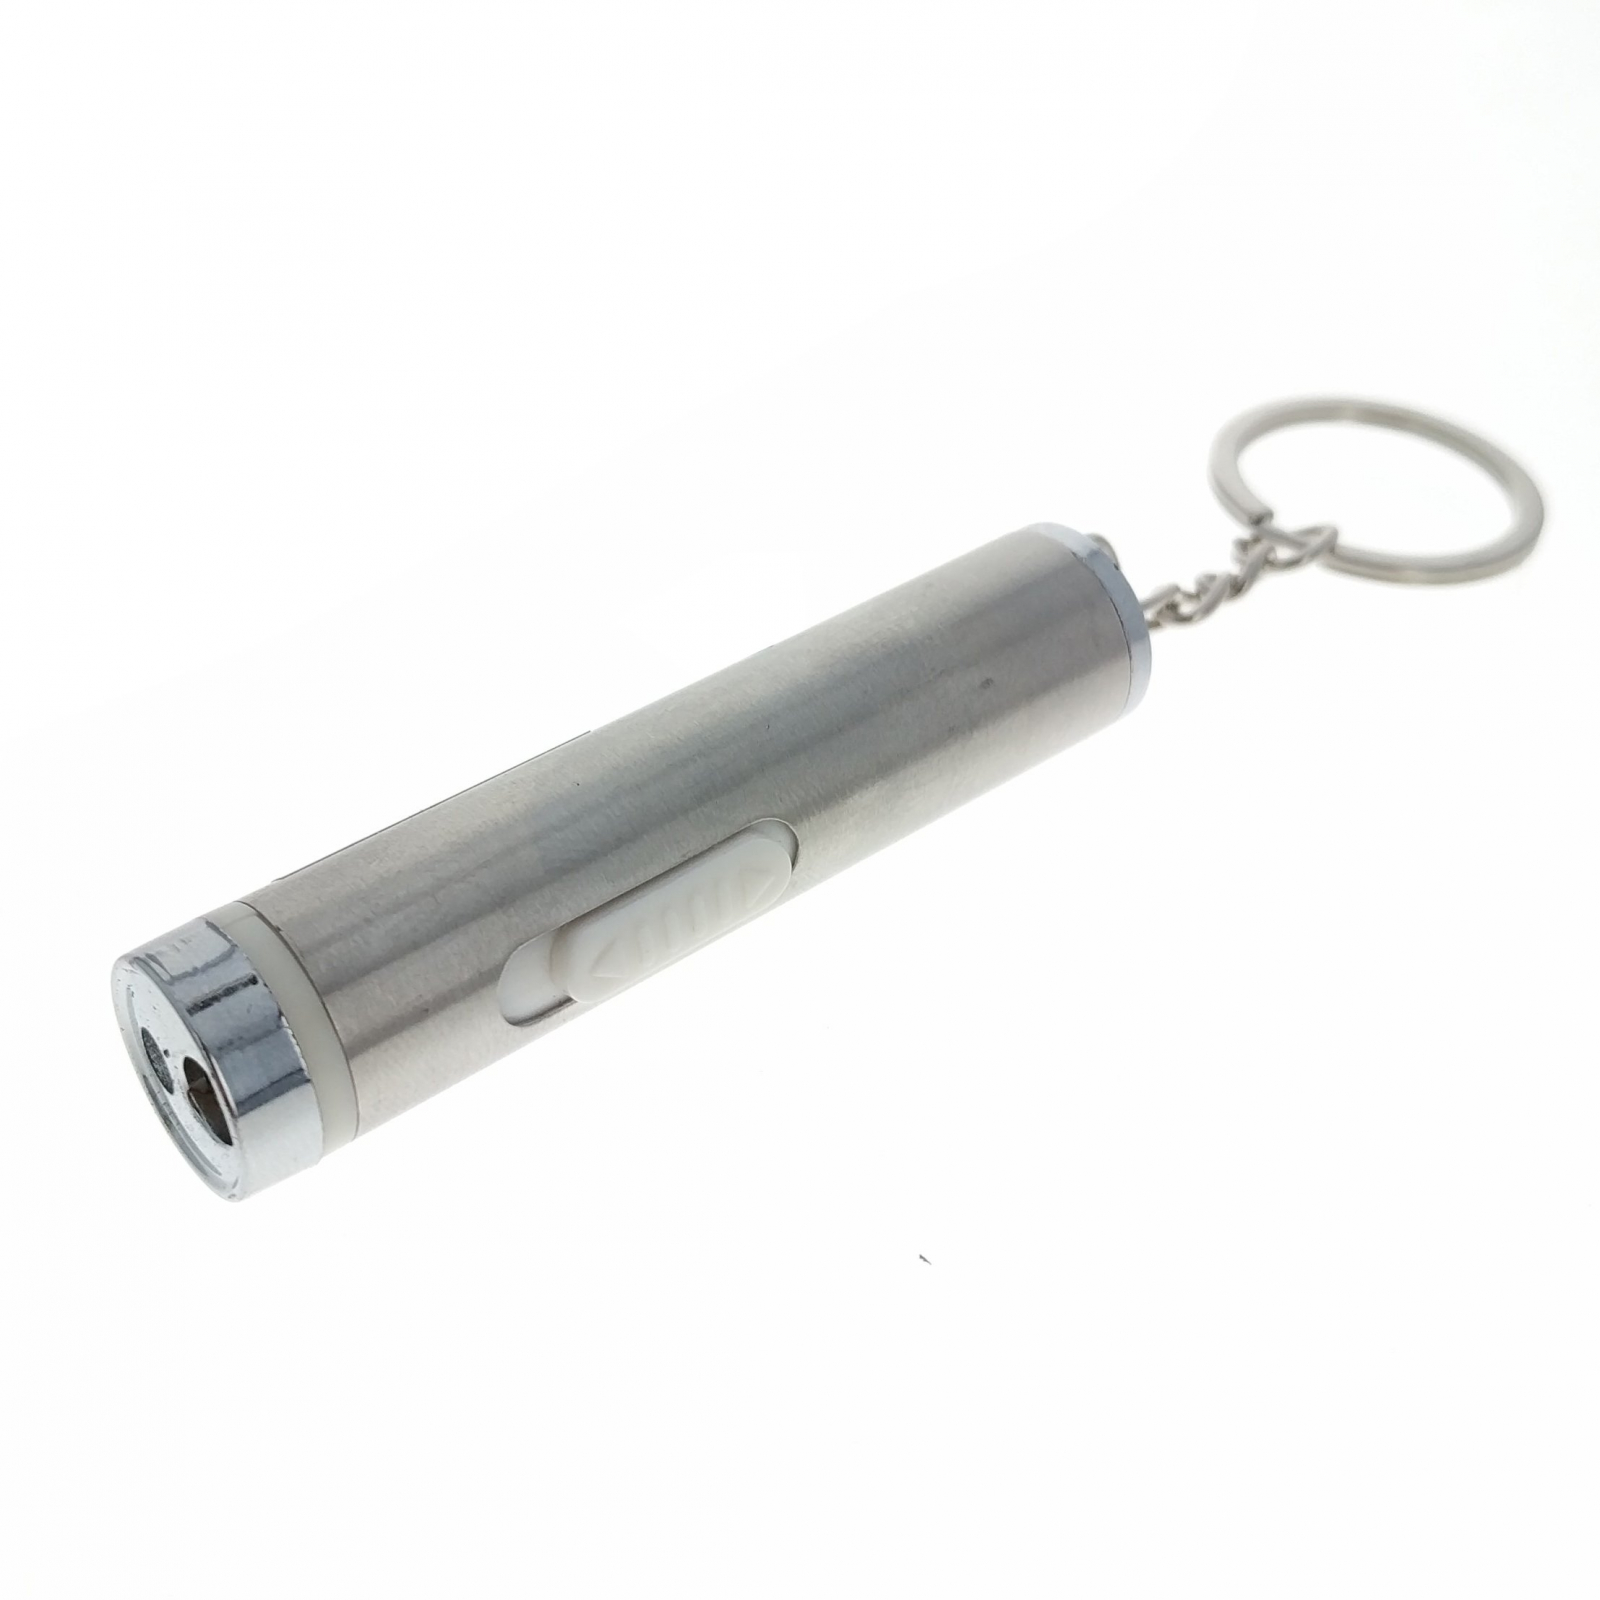 ASR Laser Pointer Key Chain Flashlight Stainless Steel Travel Tool Office